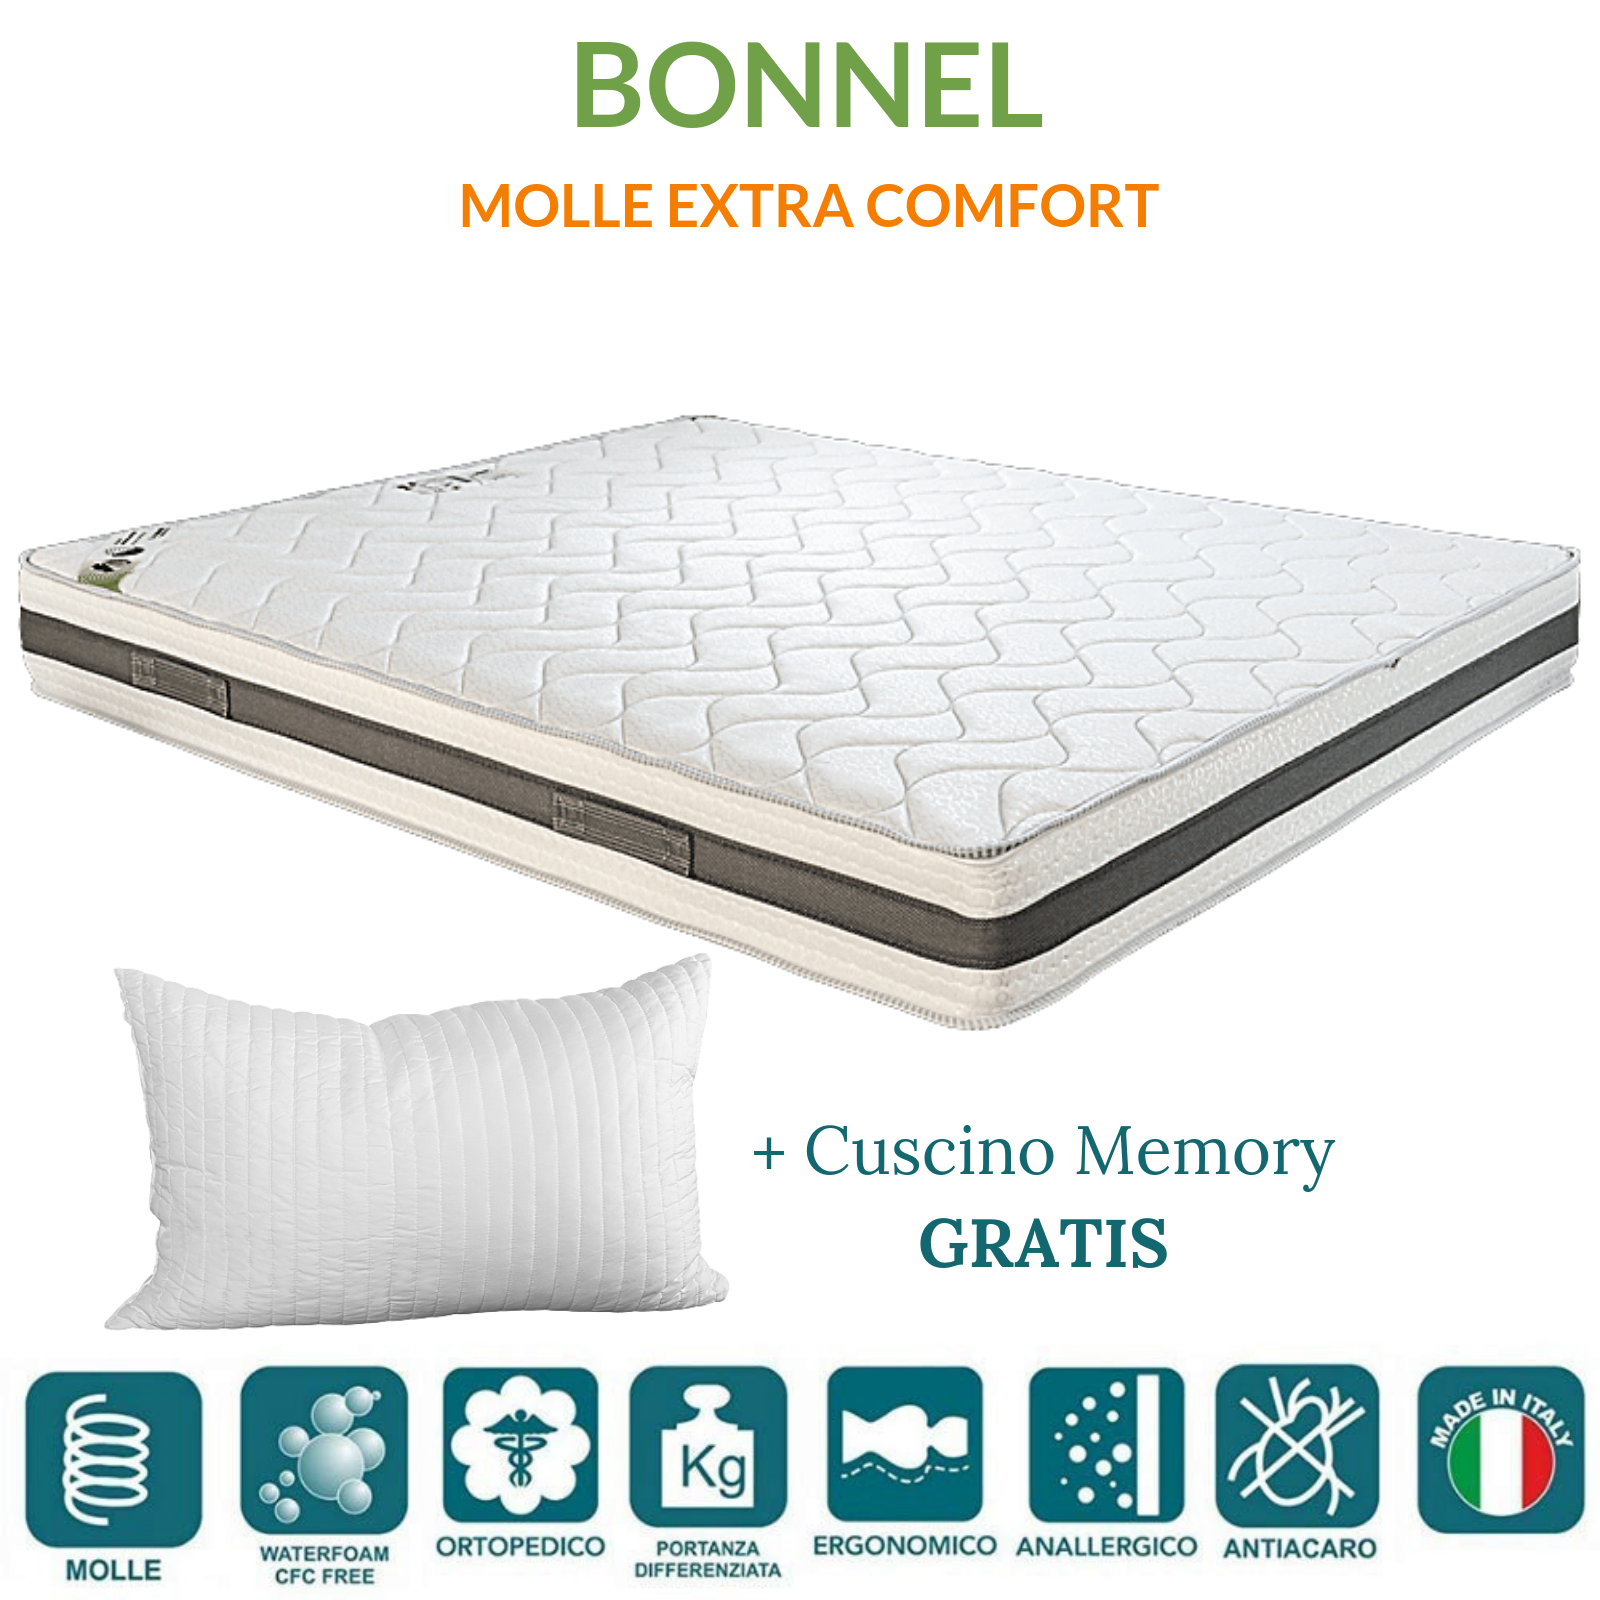 Differenza Tra Materassi A Molle E Memory.Materasso A Molle In Acciaio E Waterfoam Ortopedico Tessuto Anallergico H20 Con Cuscini In Memory Foam Gratis Bonnel